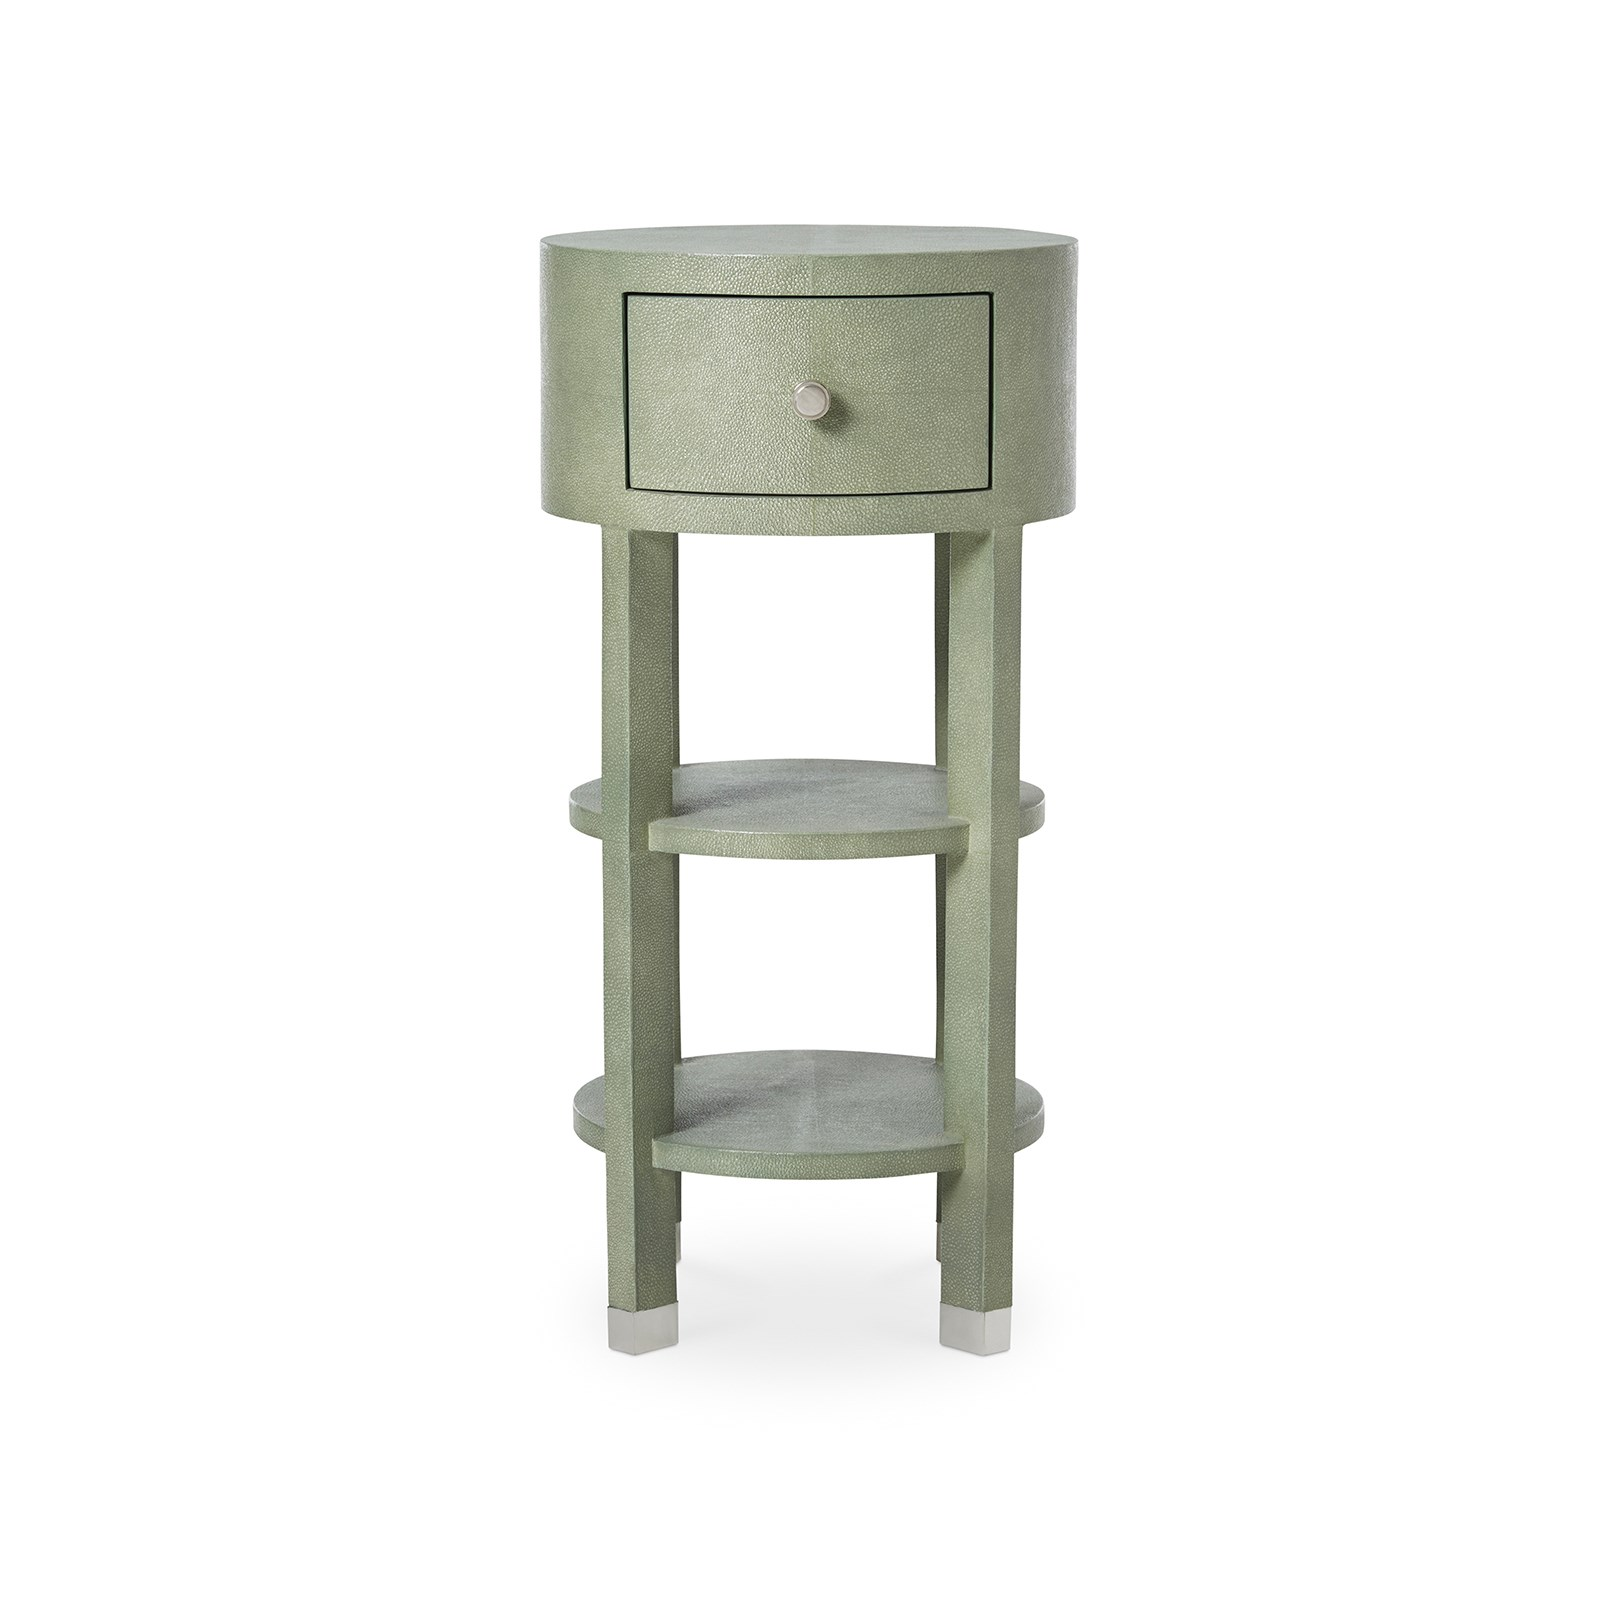 Black side table with drawer -  Cetana 1 Drawer Round Side Table Crocodile Green